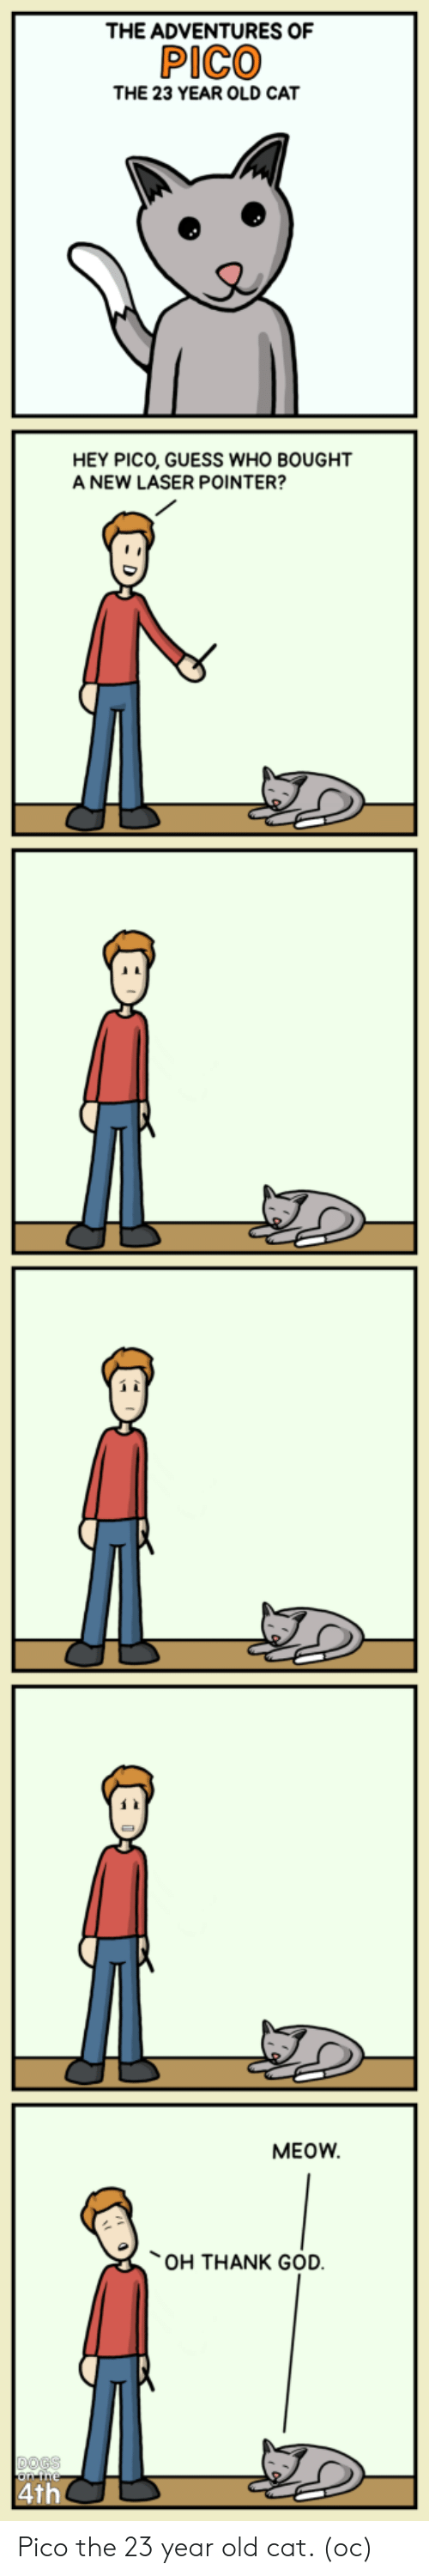 Oh Thank God: THE ADVENTURES OF  PICO  THE 23 YEAR OLD CAT  HEY PICO, GUESS WHO BOUGHT  A NEW LASER POINTER?  0  MEOW  OH THANK GOD Pico the 23 year old cat. (oc)